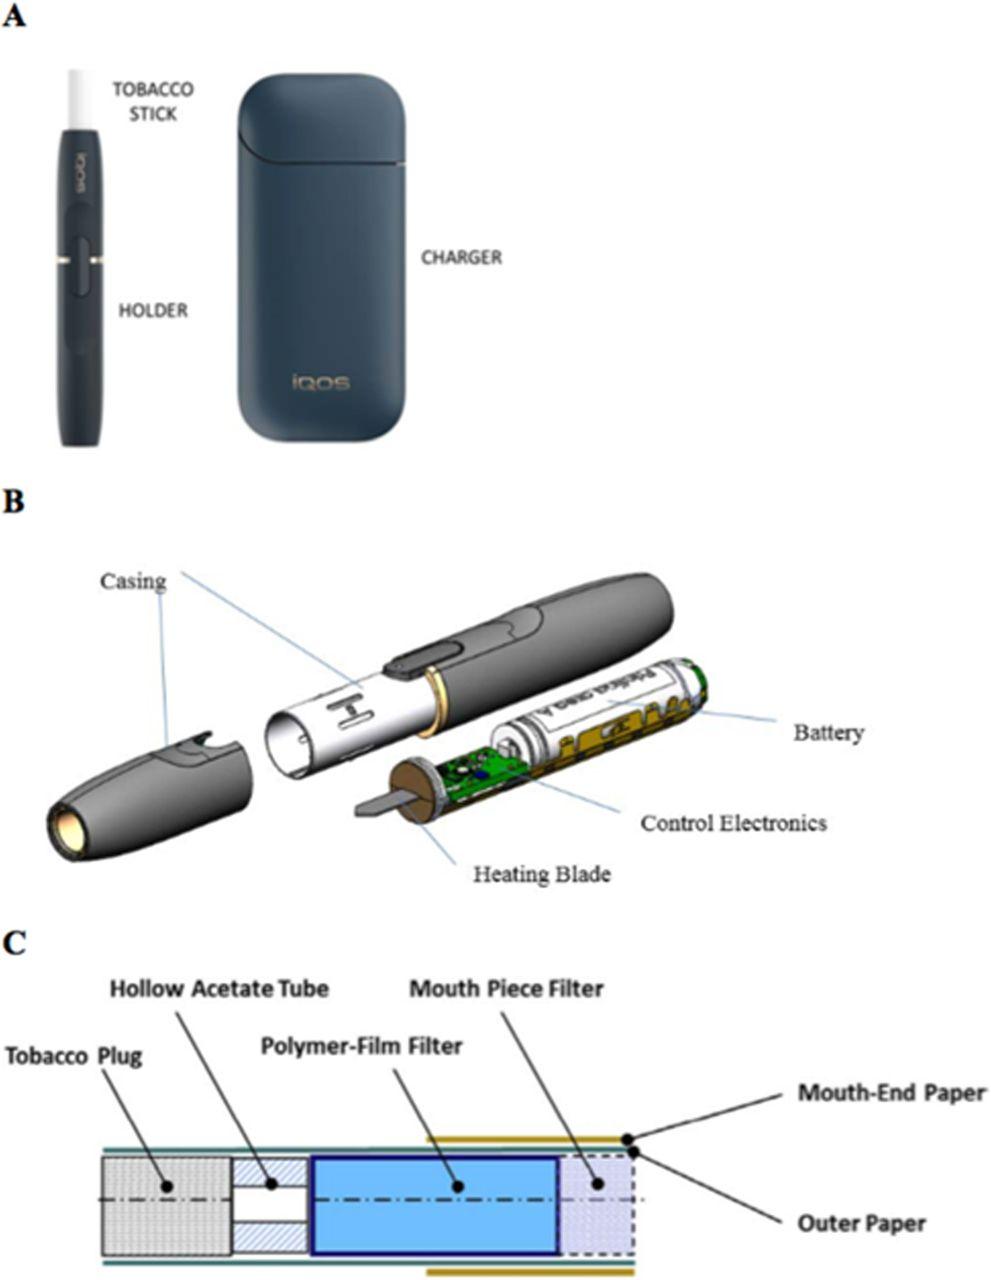 Heated tobacco product regulation under US law and the FCTC